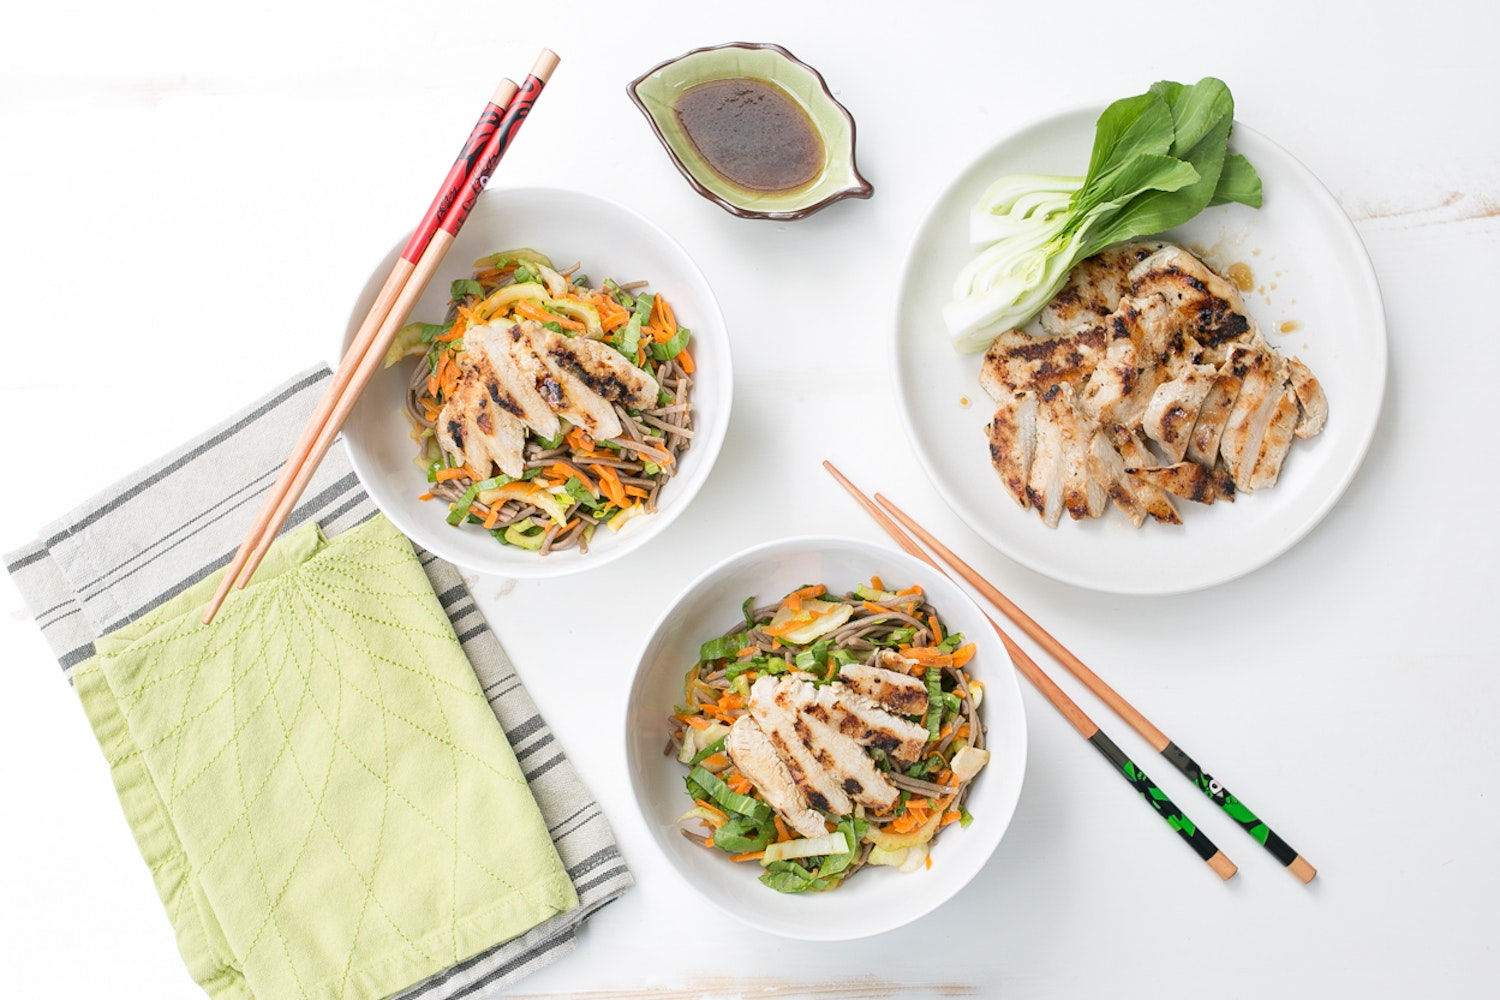 20160704 grilled chicken soba salad nm 2.jpg?ixlib=rails 2.1